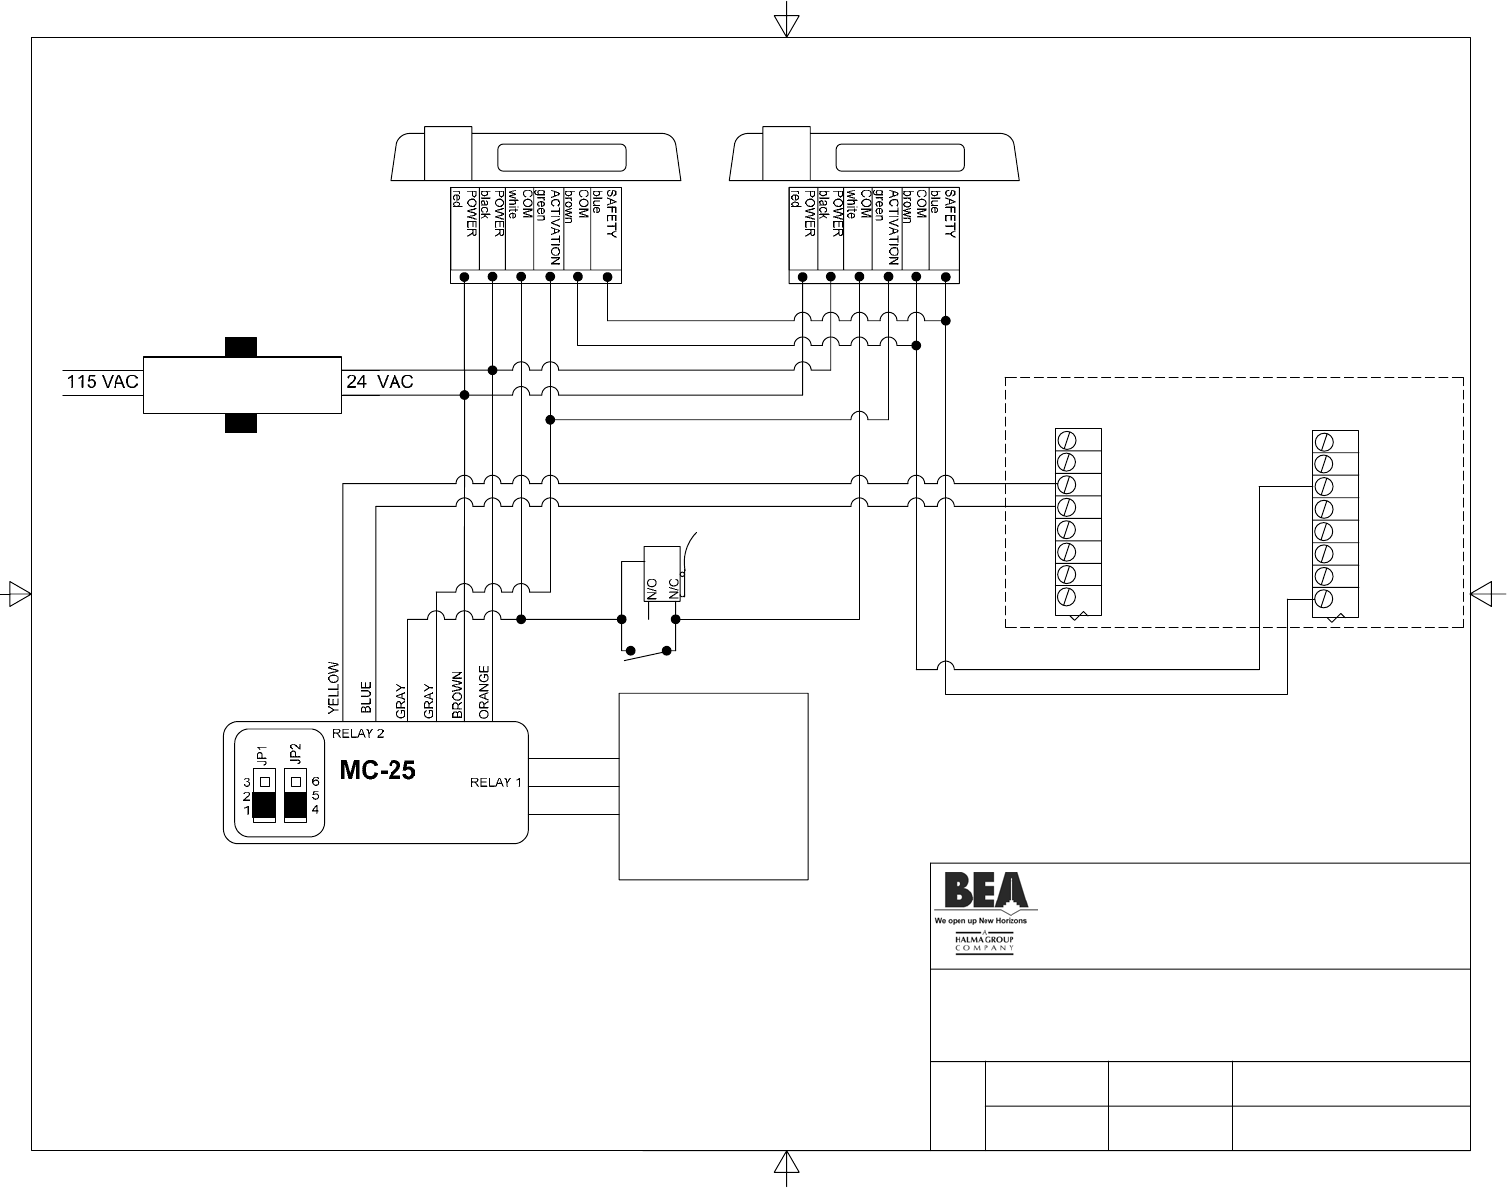 ca647ff3 1322 44d5 afd2 be5728ca6bf1 bg1 bea door dip switch i user guide manualsonline com bea ixio wiring diagram at gsmportal.co